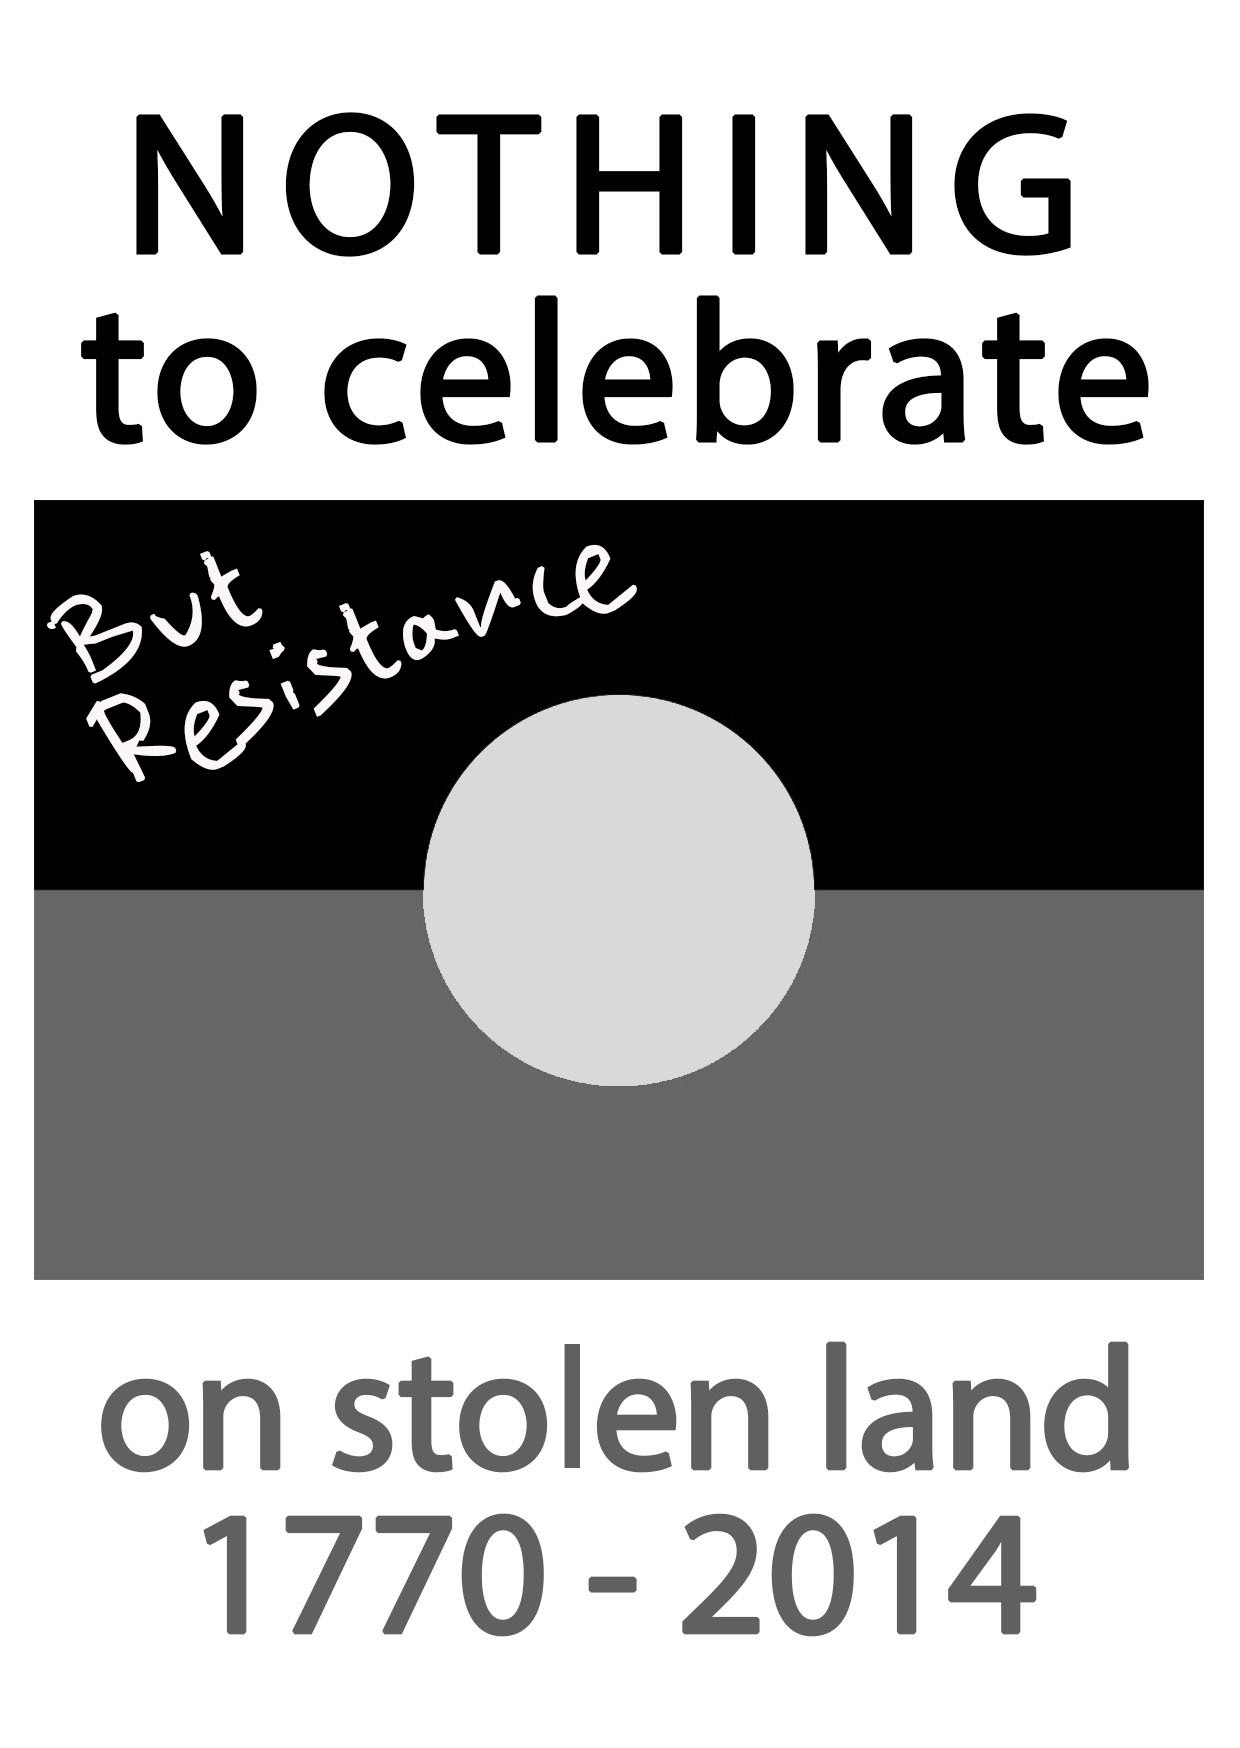 Nothing to celebrate but resistance on stolen land